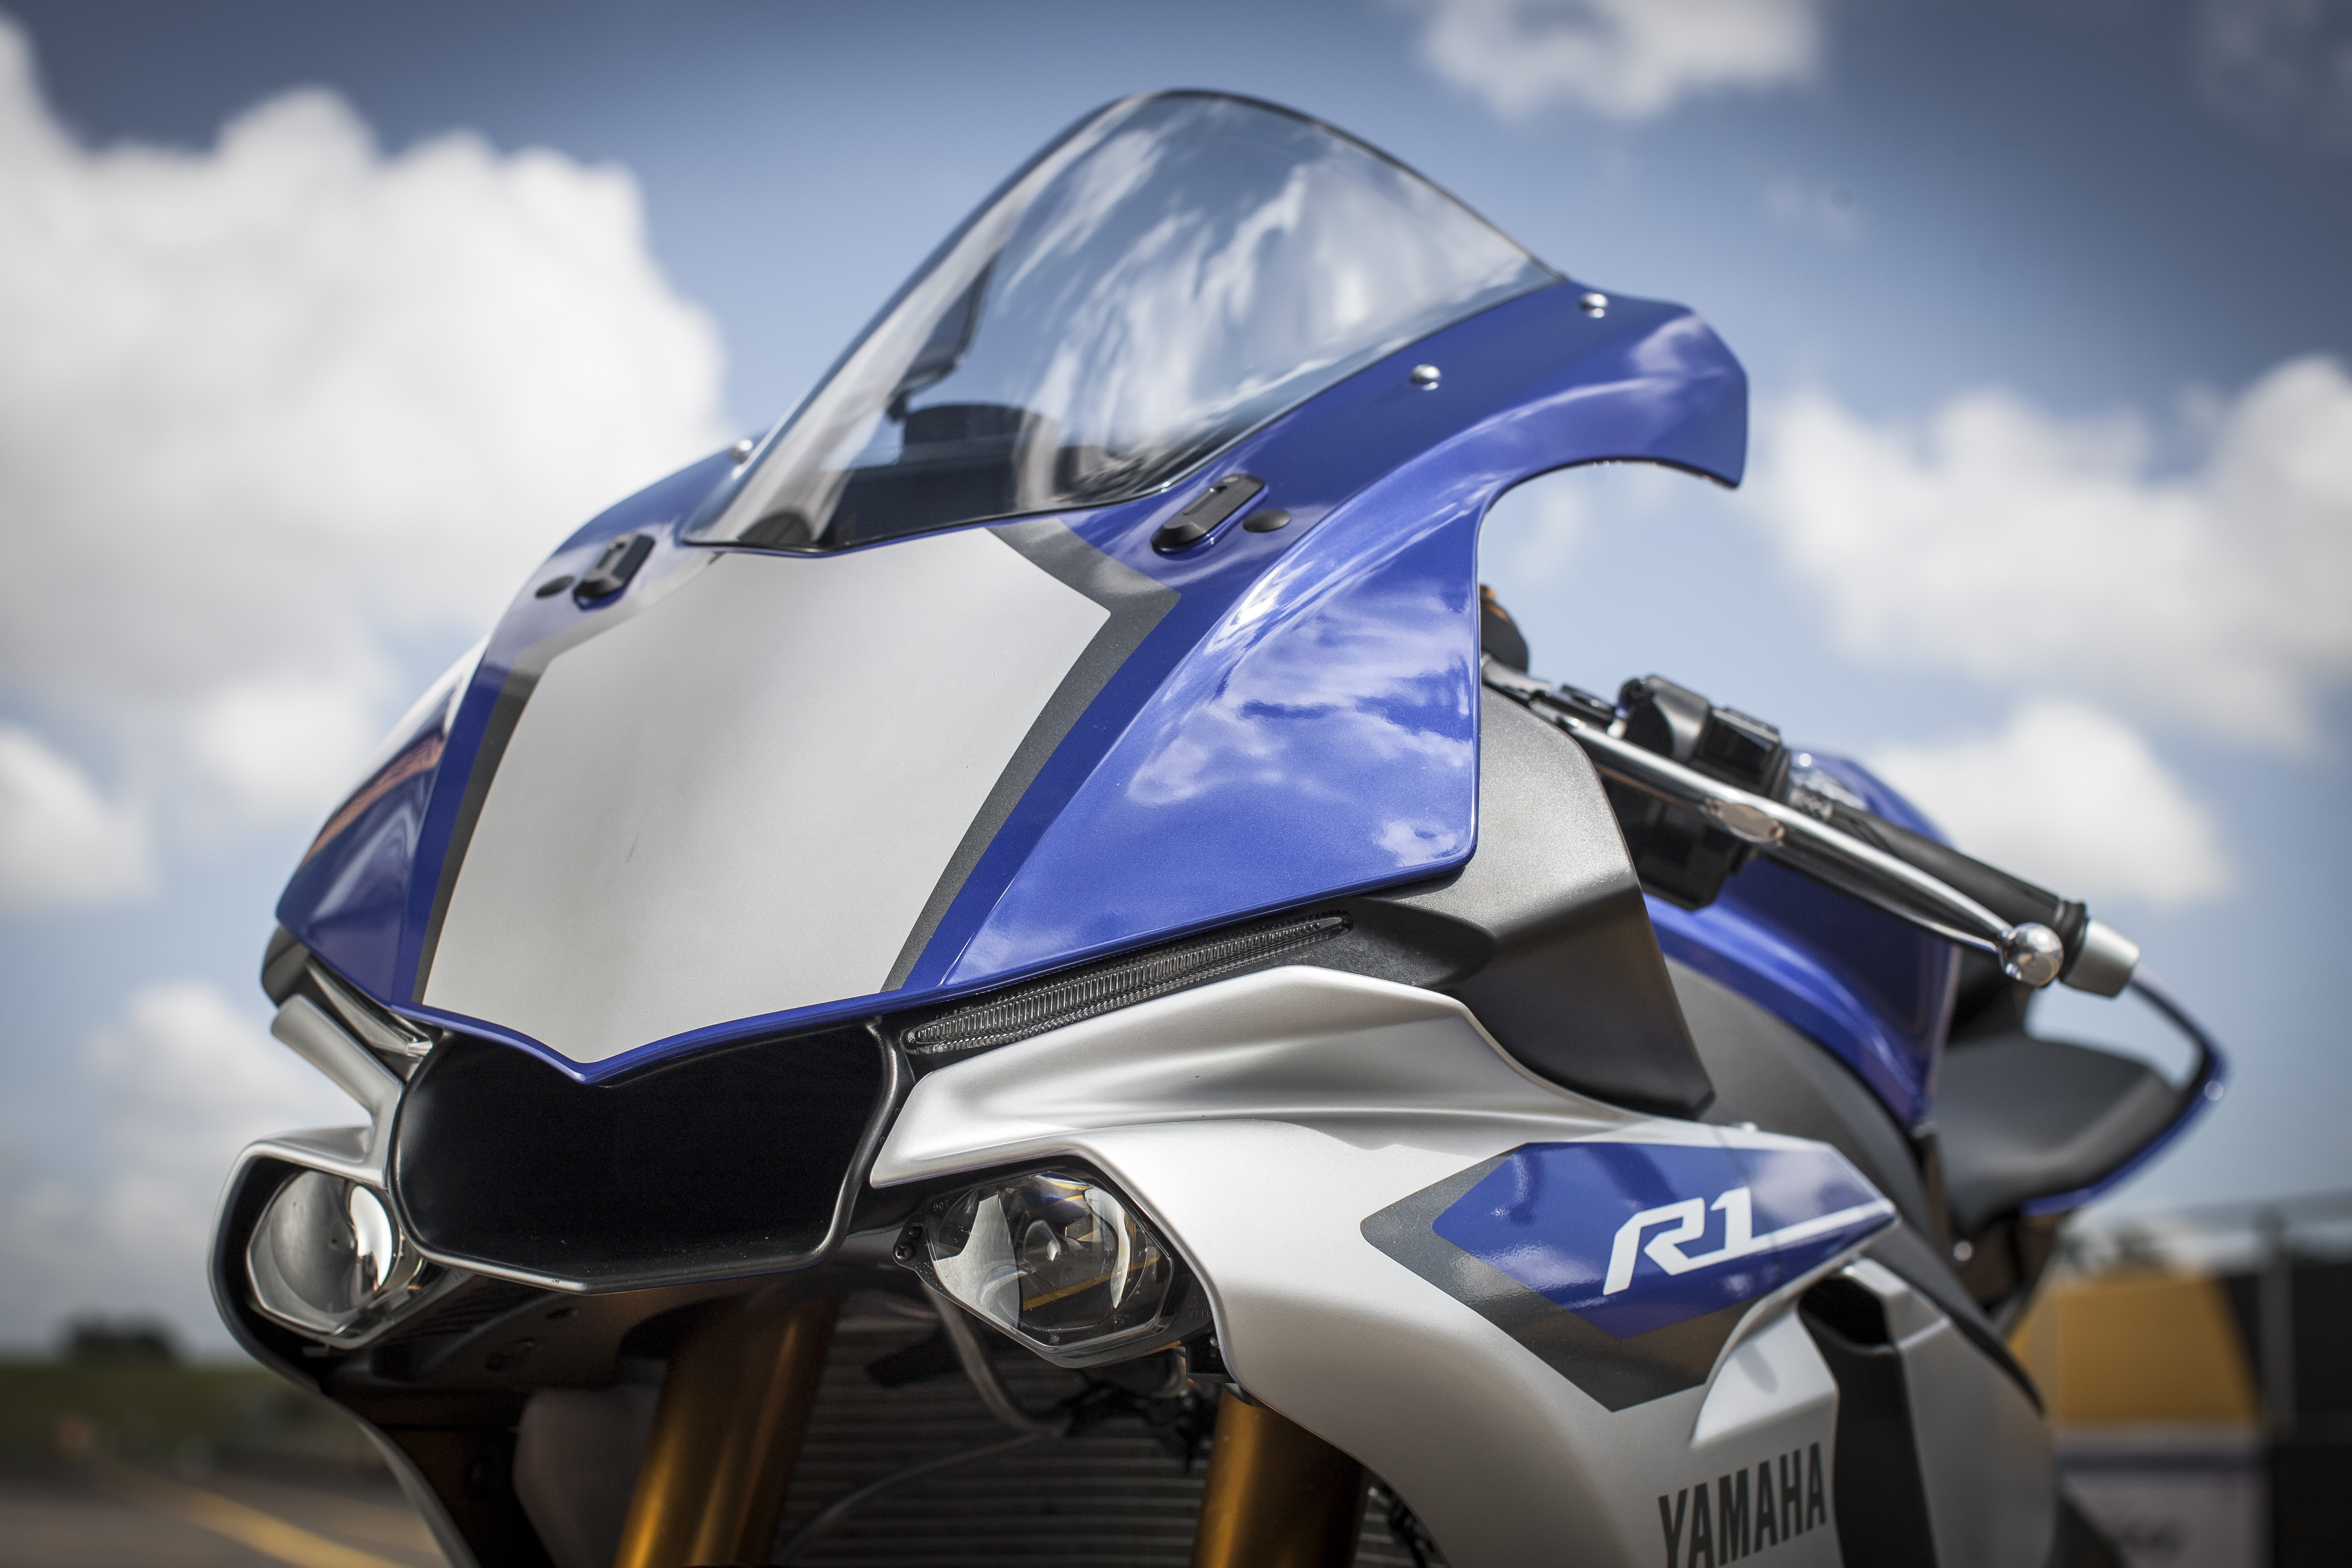 First ride yamaha r1 and r1m review visordown publicscrutiny Images